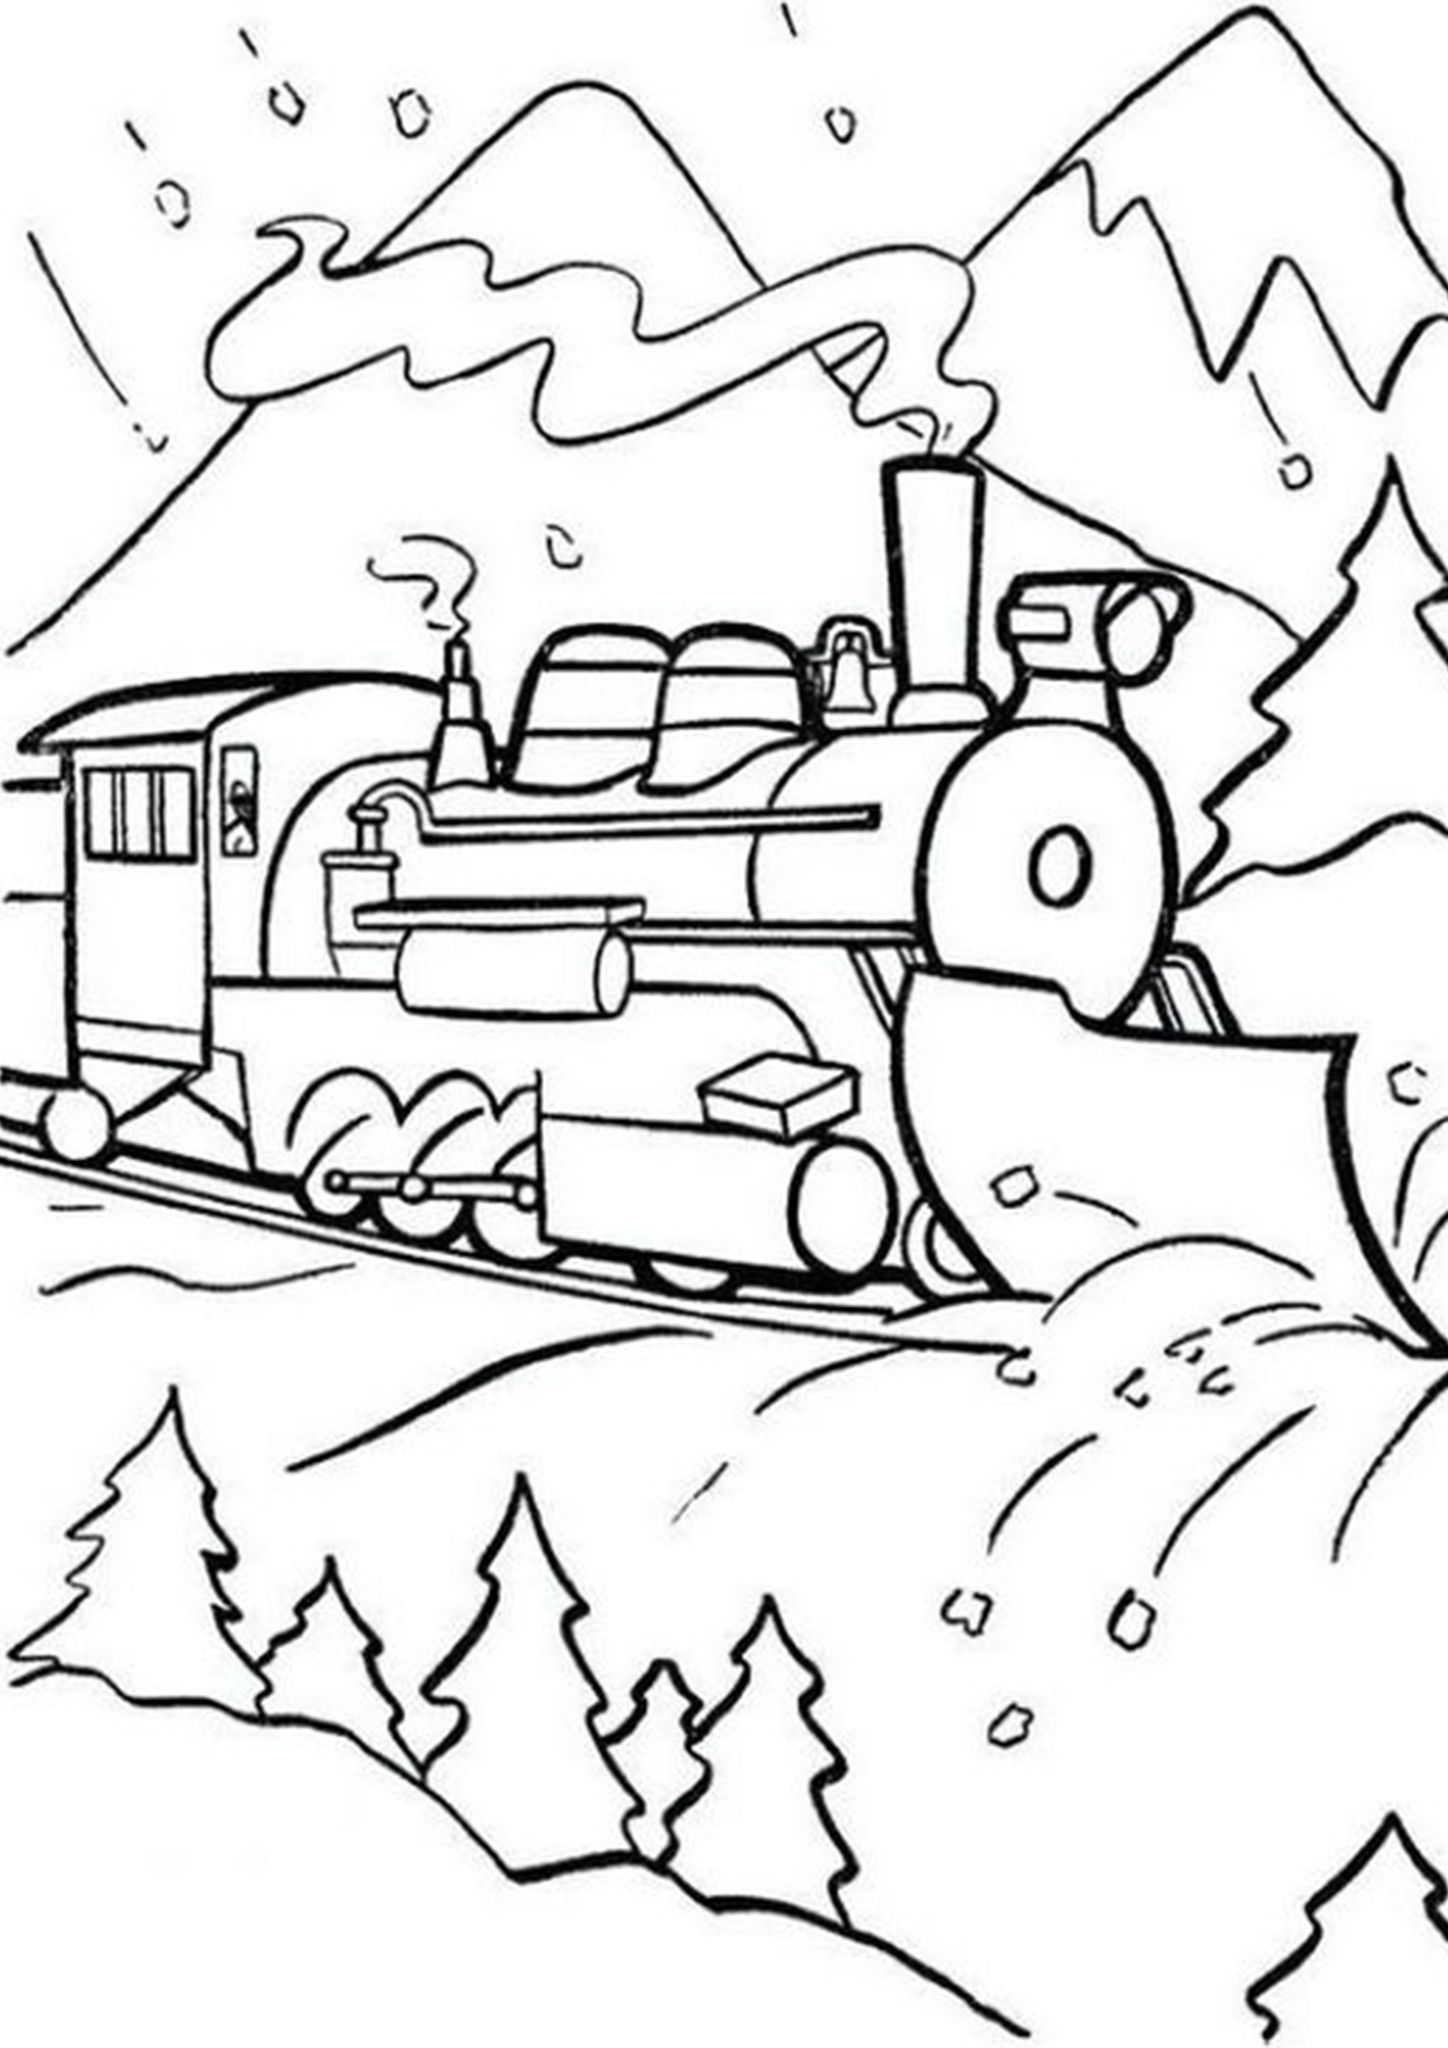 Free Easy To Print Train Coloring Pages Train Coloring Pages Free Coloring Pages Superhero Coloring Pages